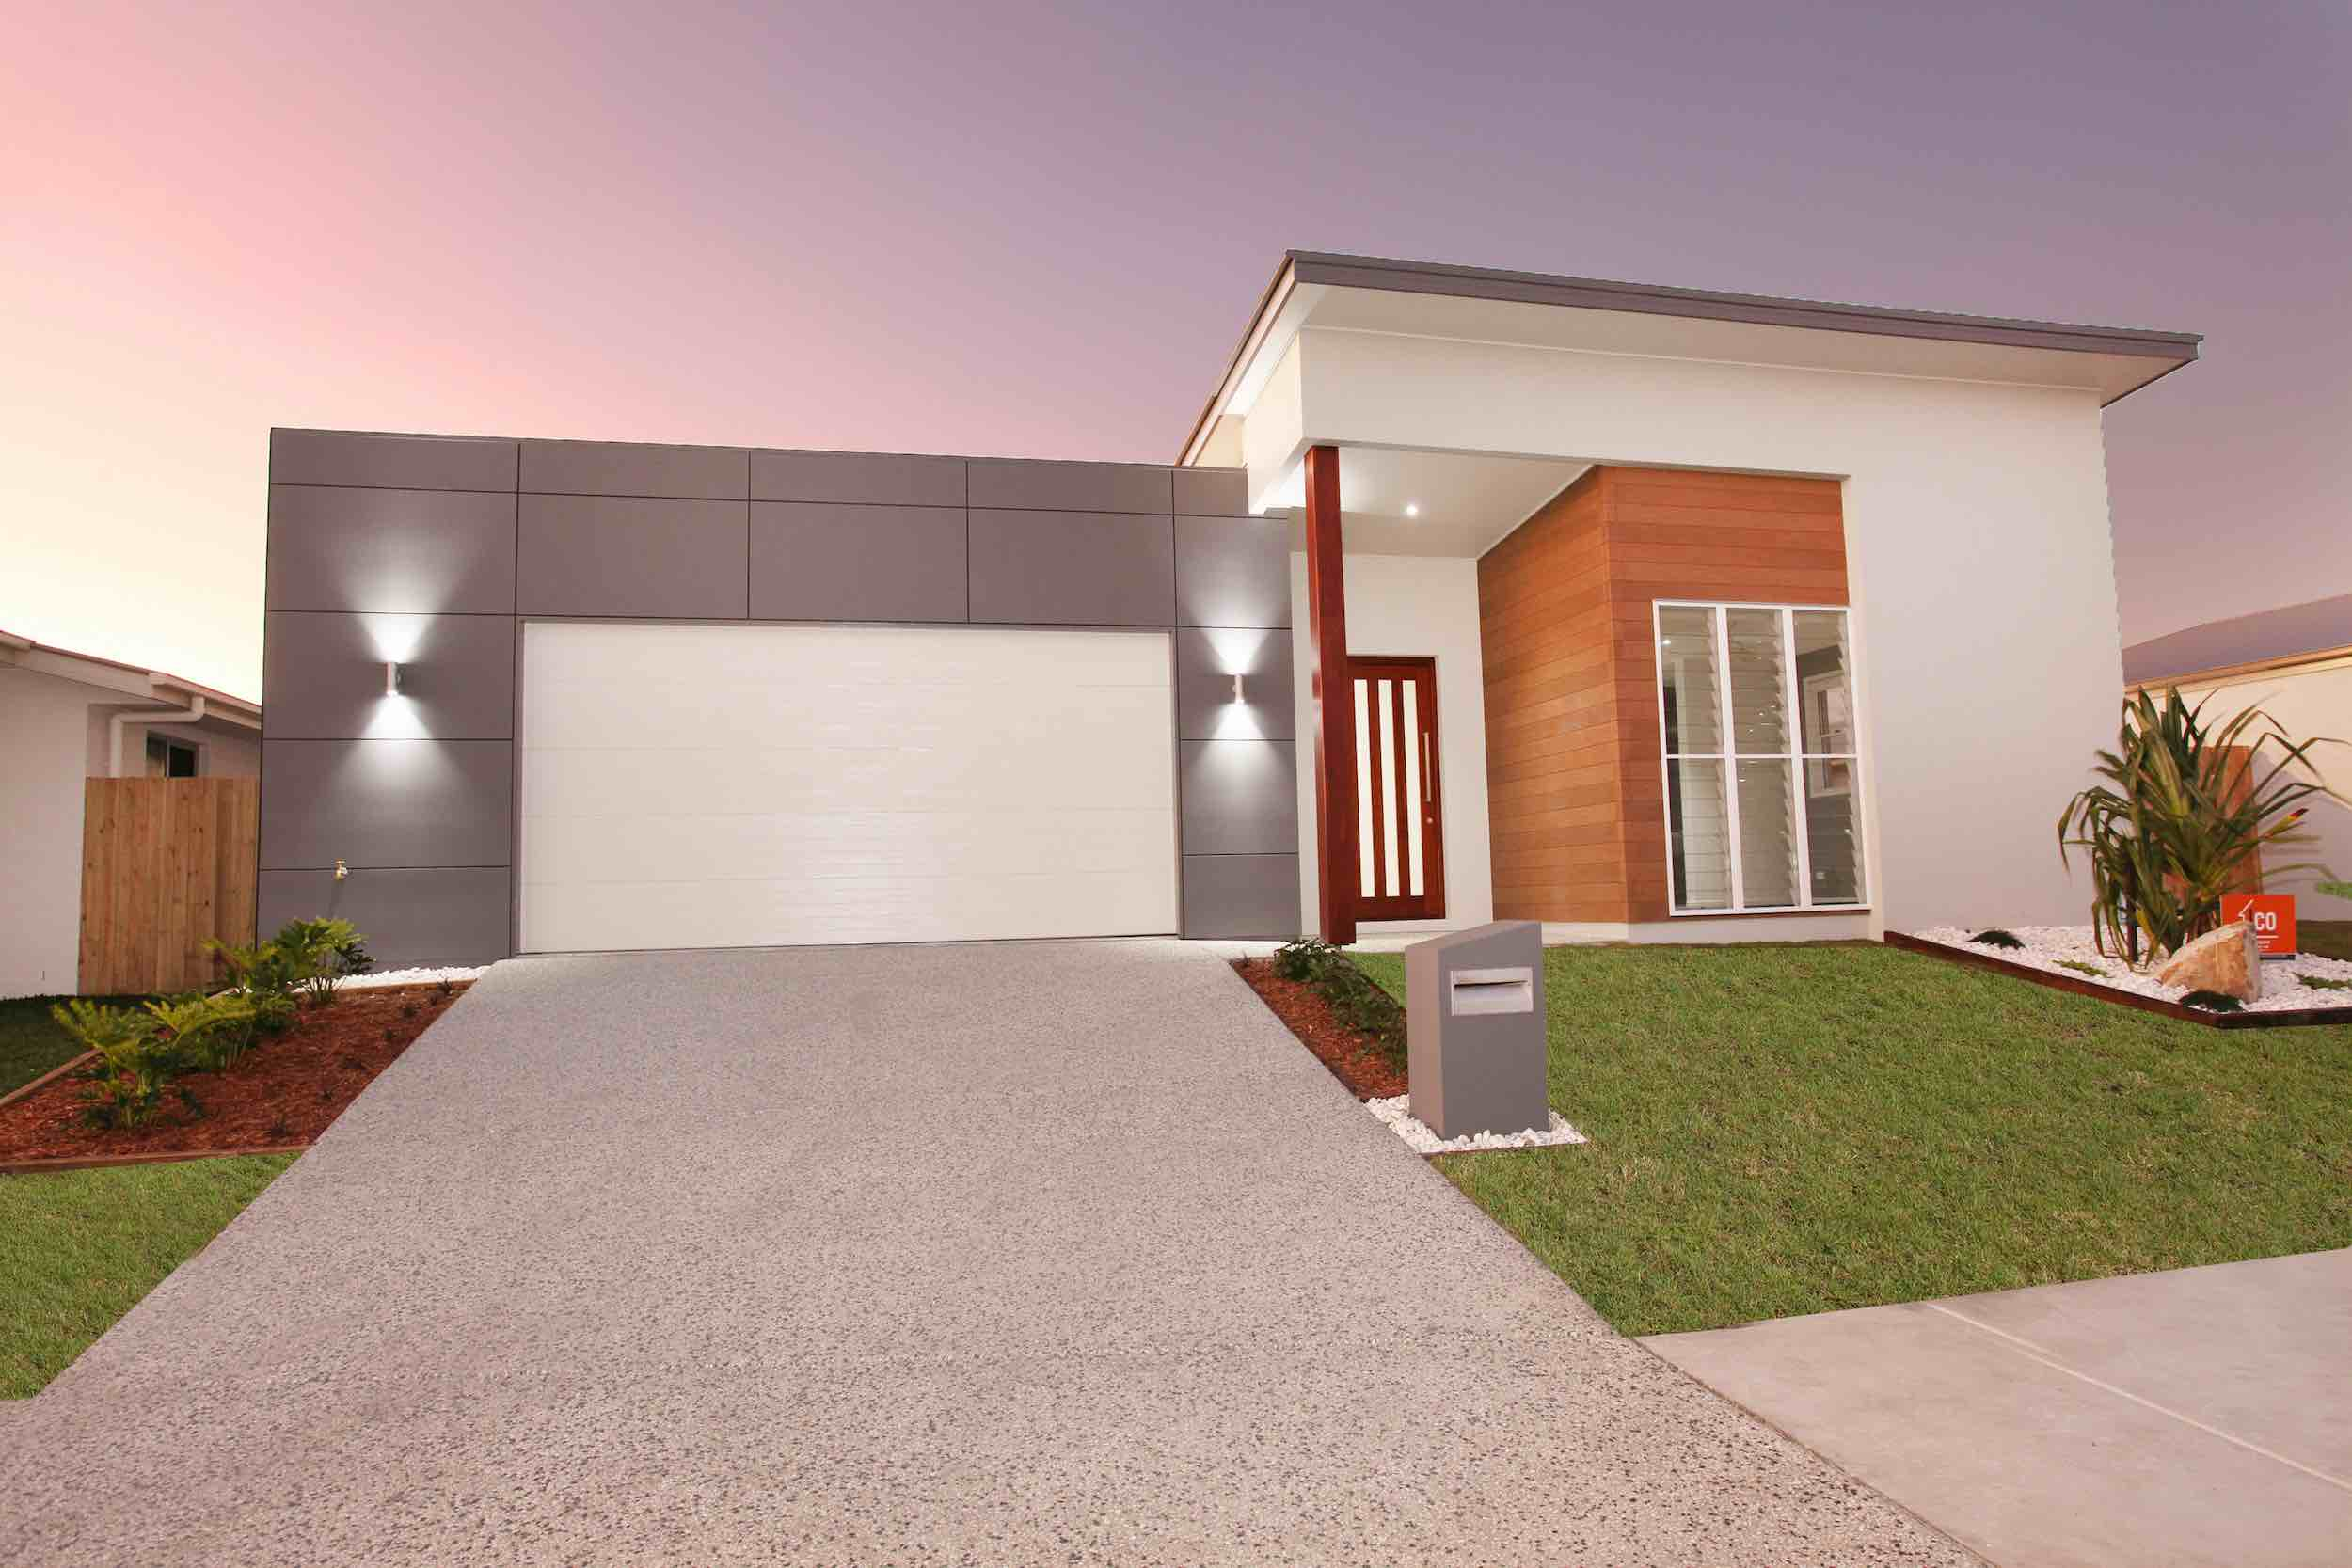 Small lot house design by Principal Plans